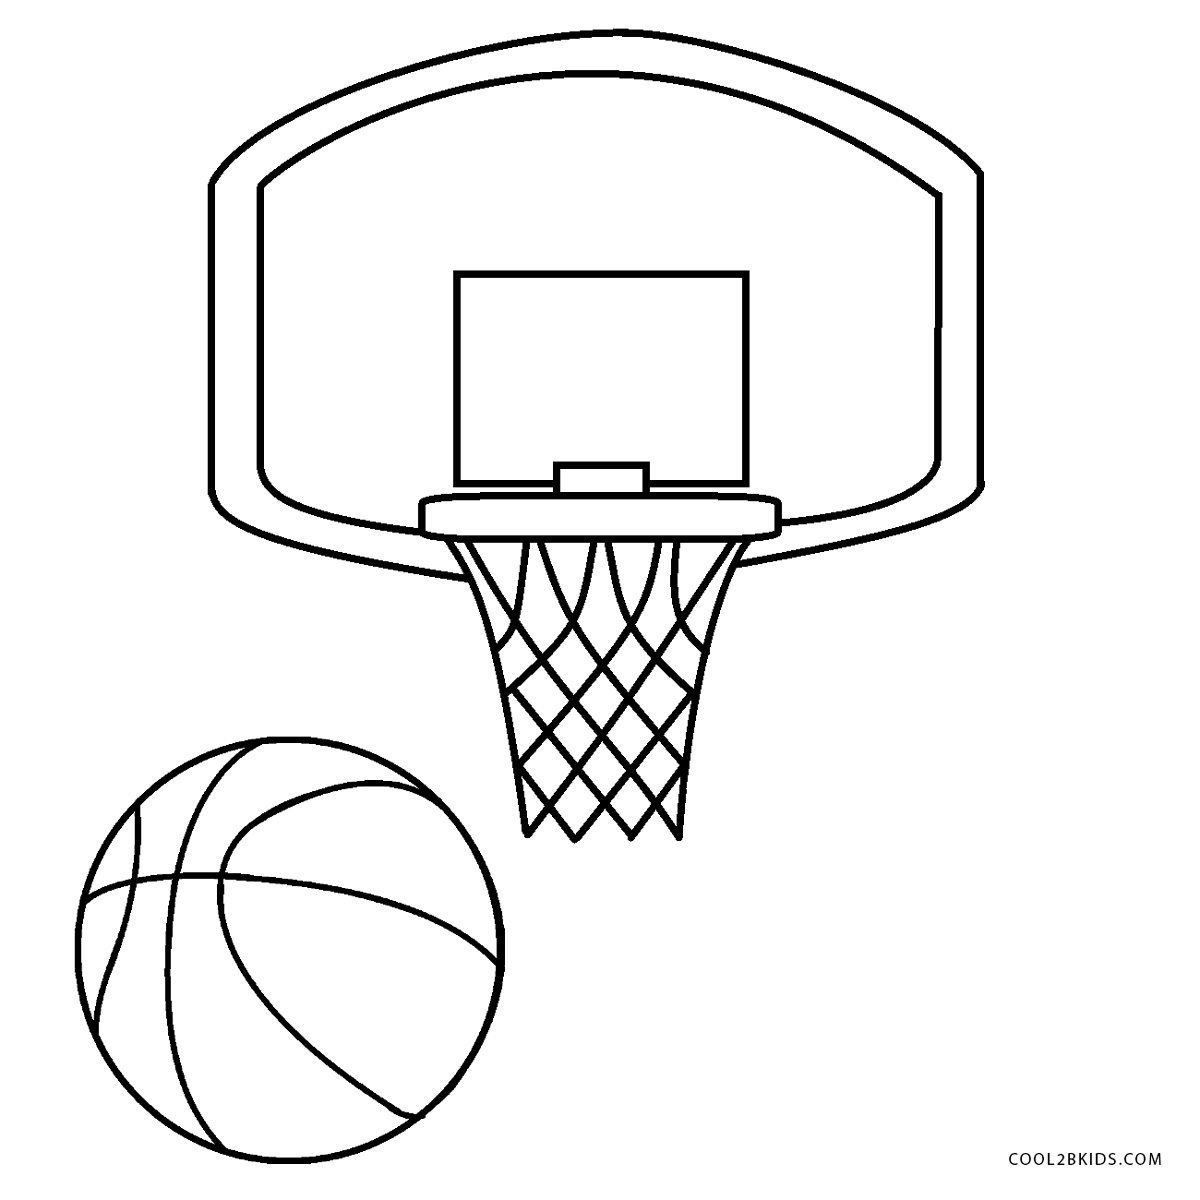 - Free Printable Basketball Coloring Pages For Kids Cool2bKids